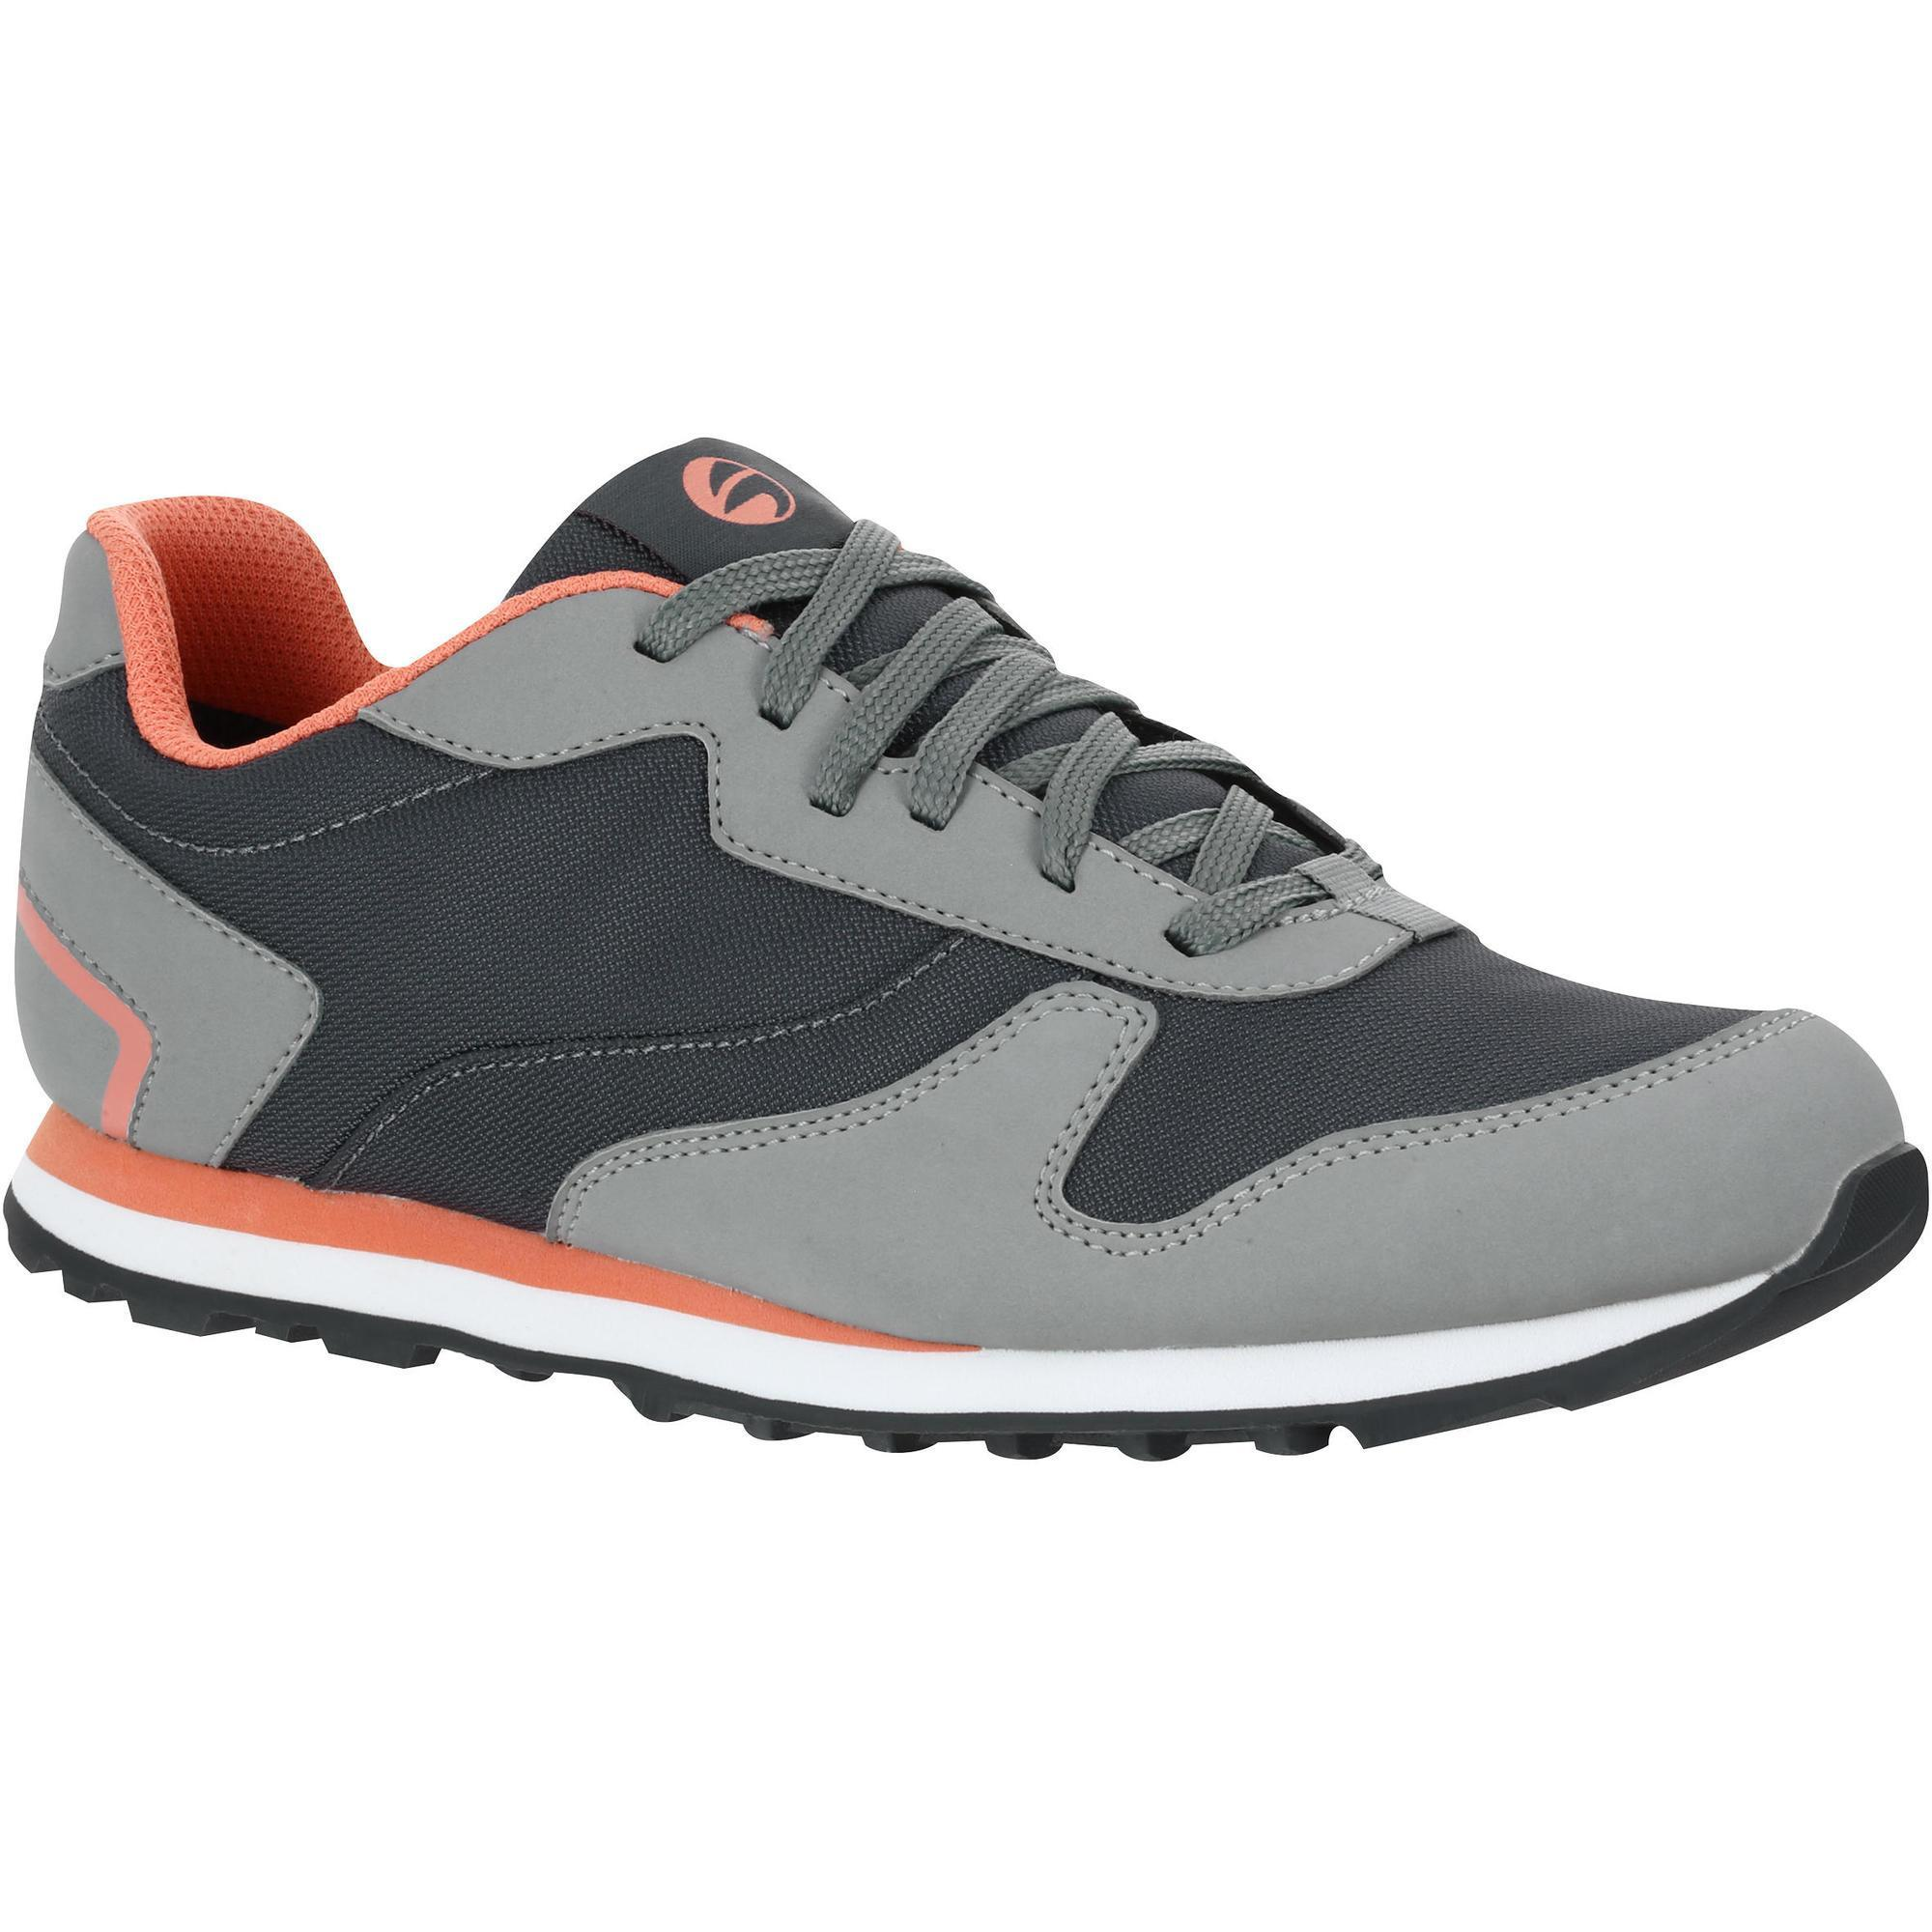 Golf Shoes Spikeless 500 - Grey INESIS